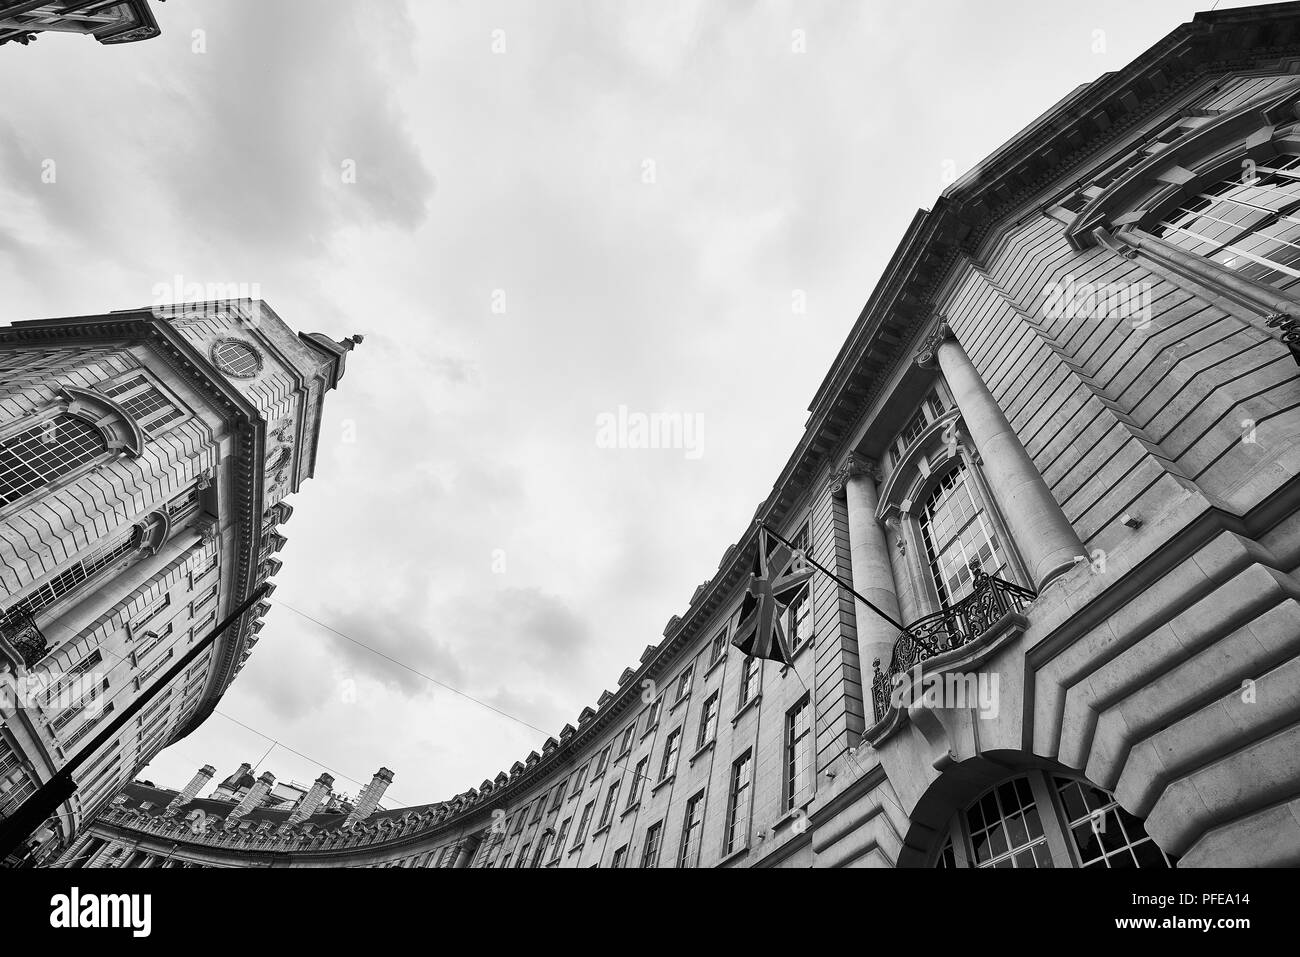 LONDON, UK - JULY 24, 2016: Low angle black and white wide-angle shot of Regent Street building with Union Jack in the lower left. - Stock Image